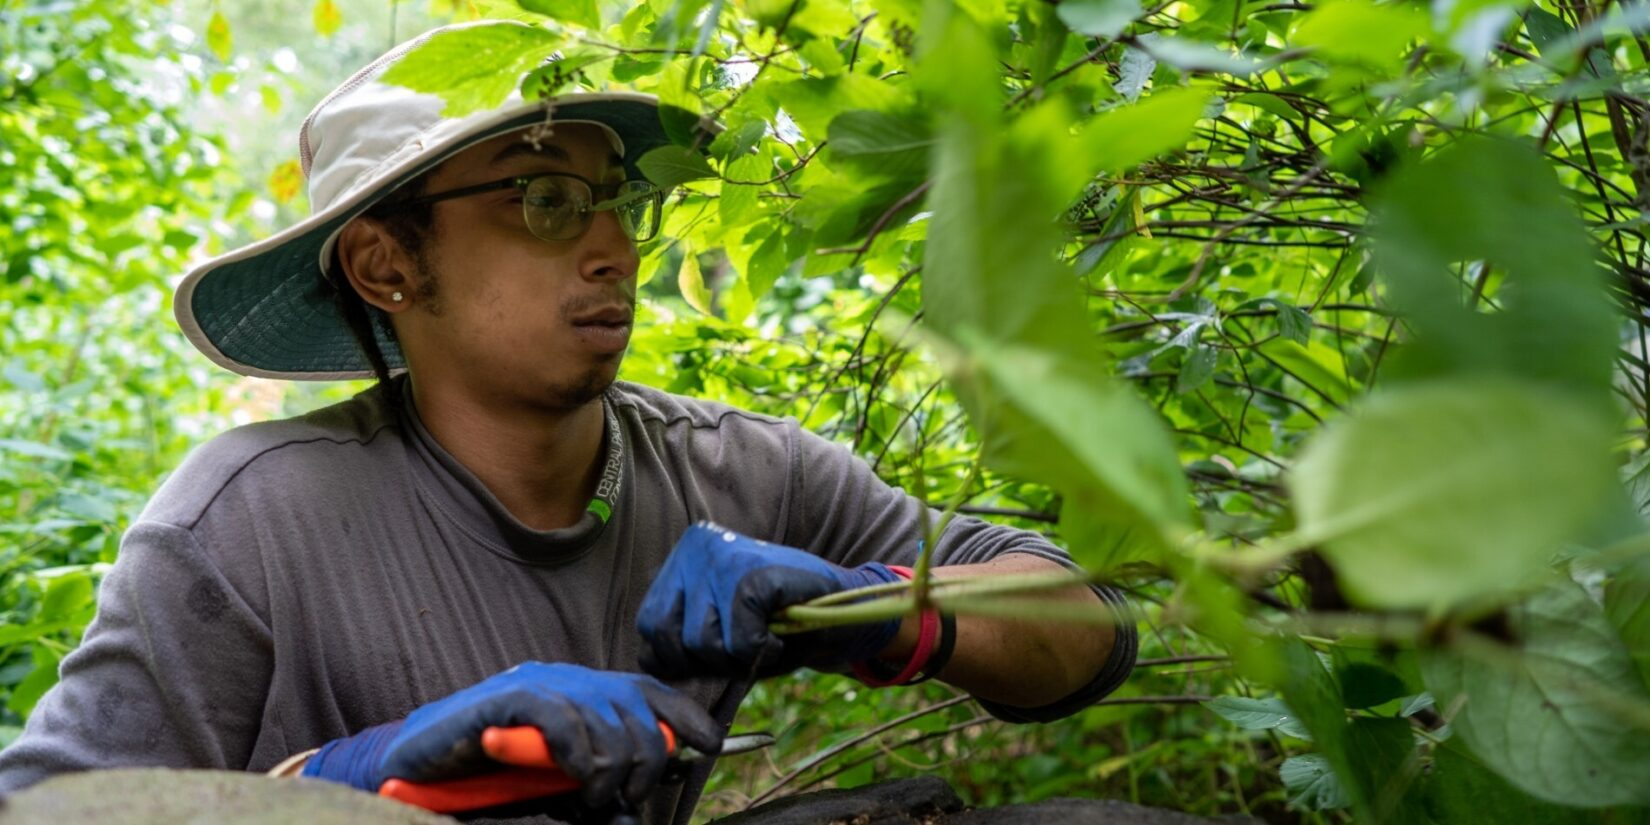 A Conservancy worker in a wide-brimmed hat works deep in the leaves.